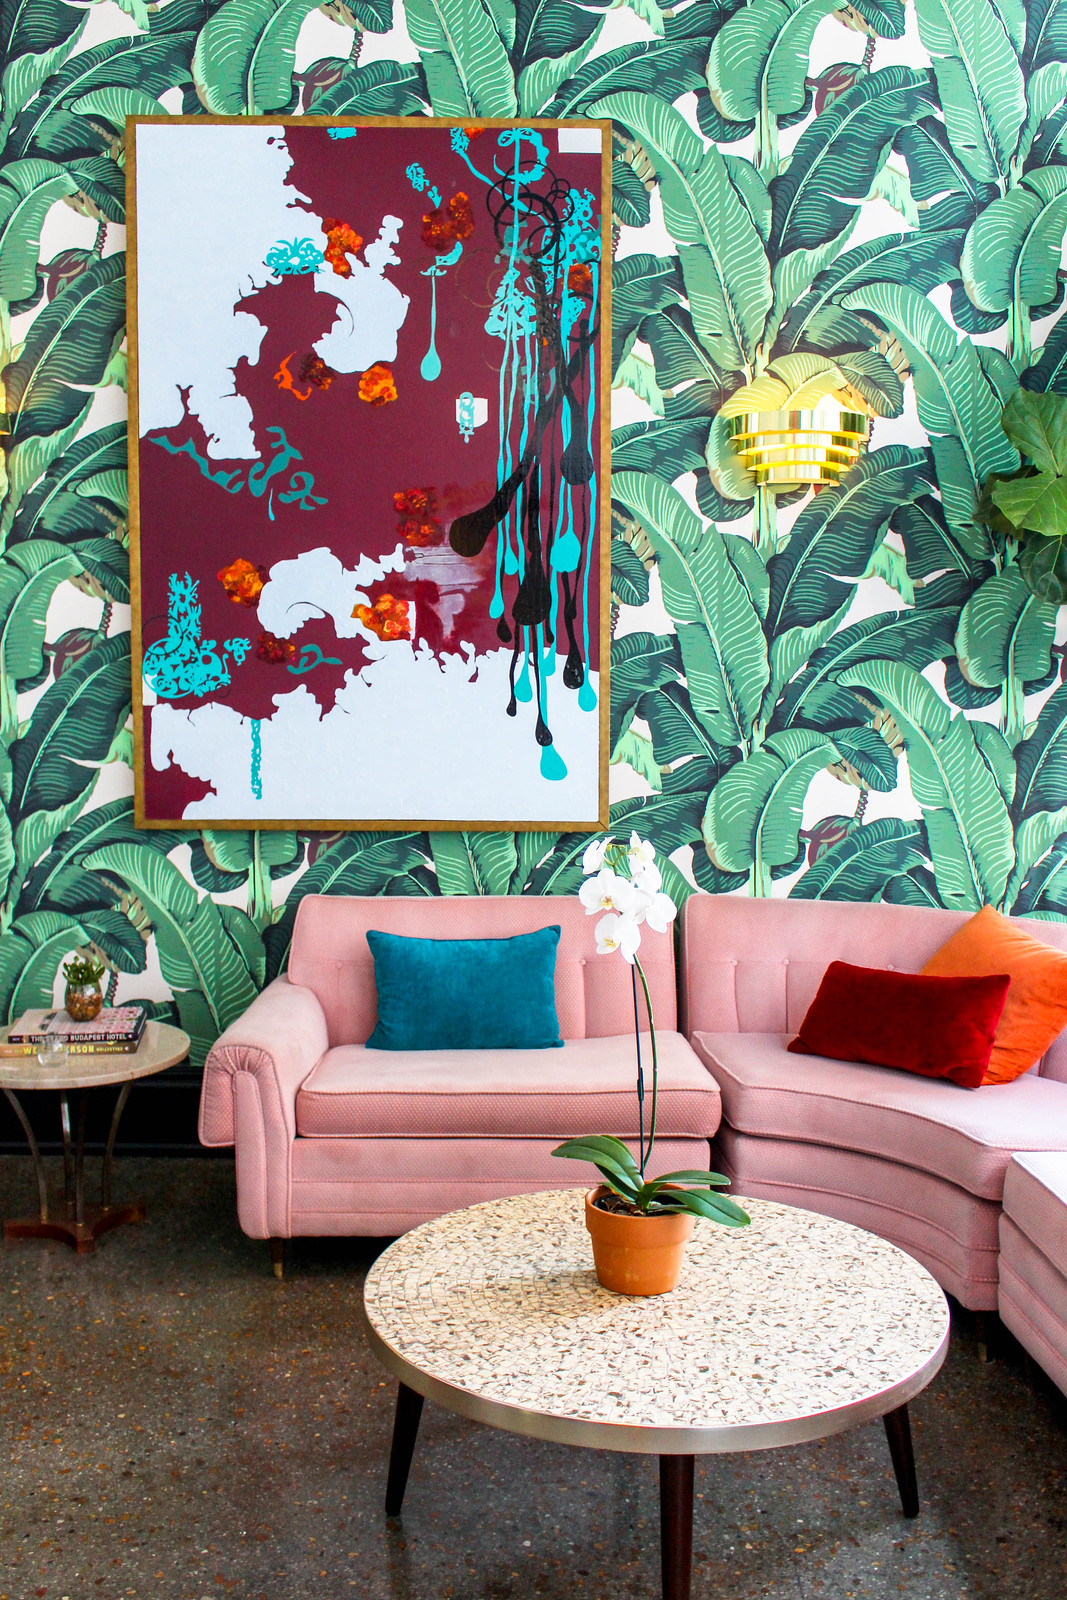 The Dwell Hotel Chattanooga Tennesee   Pink and Green Living Room Inspiration   20 Photos That Will Prove Decorating with Pink and Green is the Next Big Thing